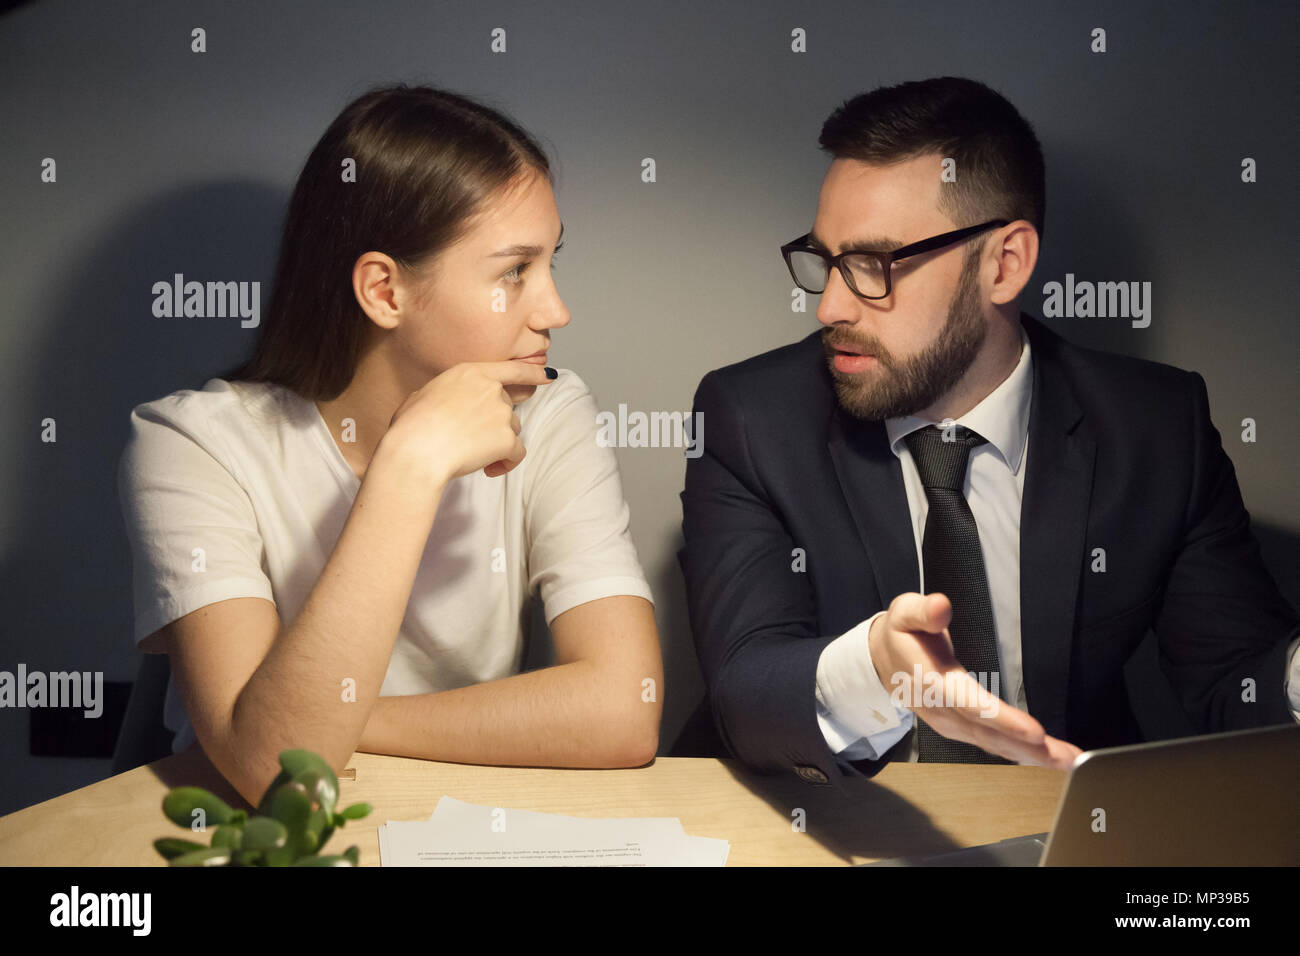 Male worker explaining something to female colleague Stock Photo